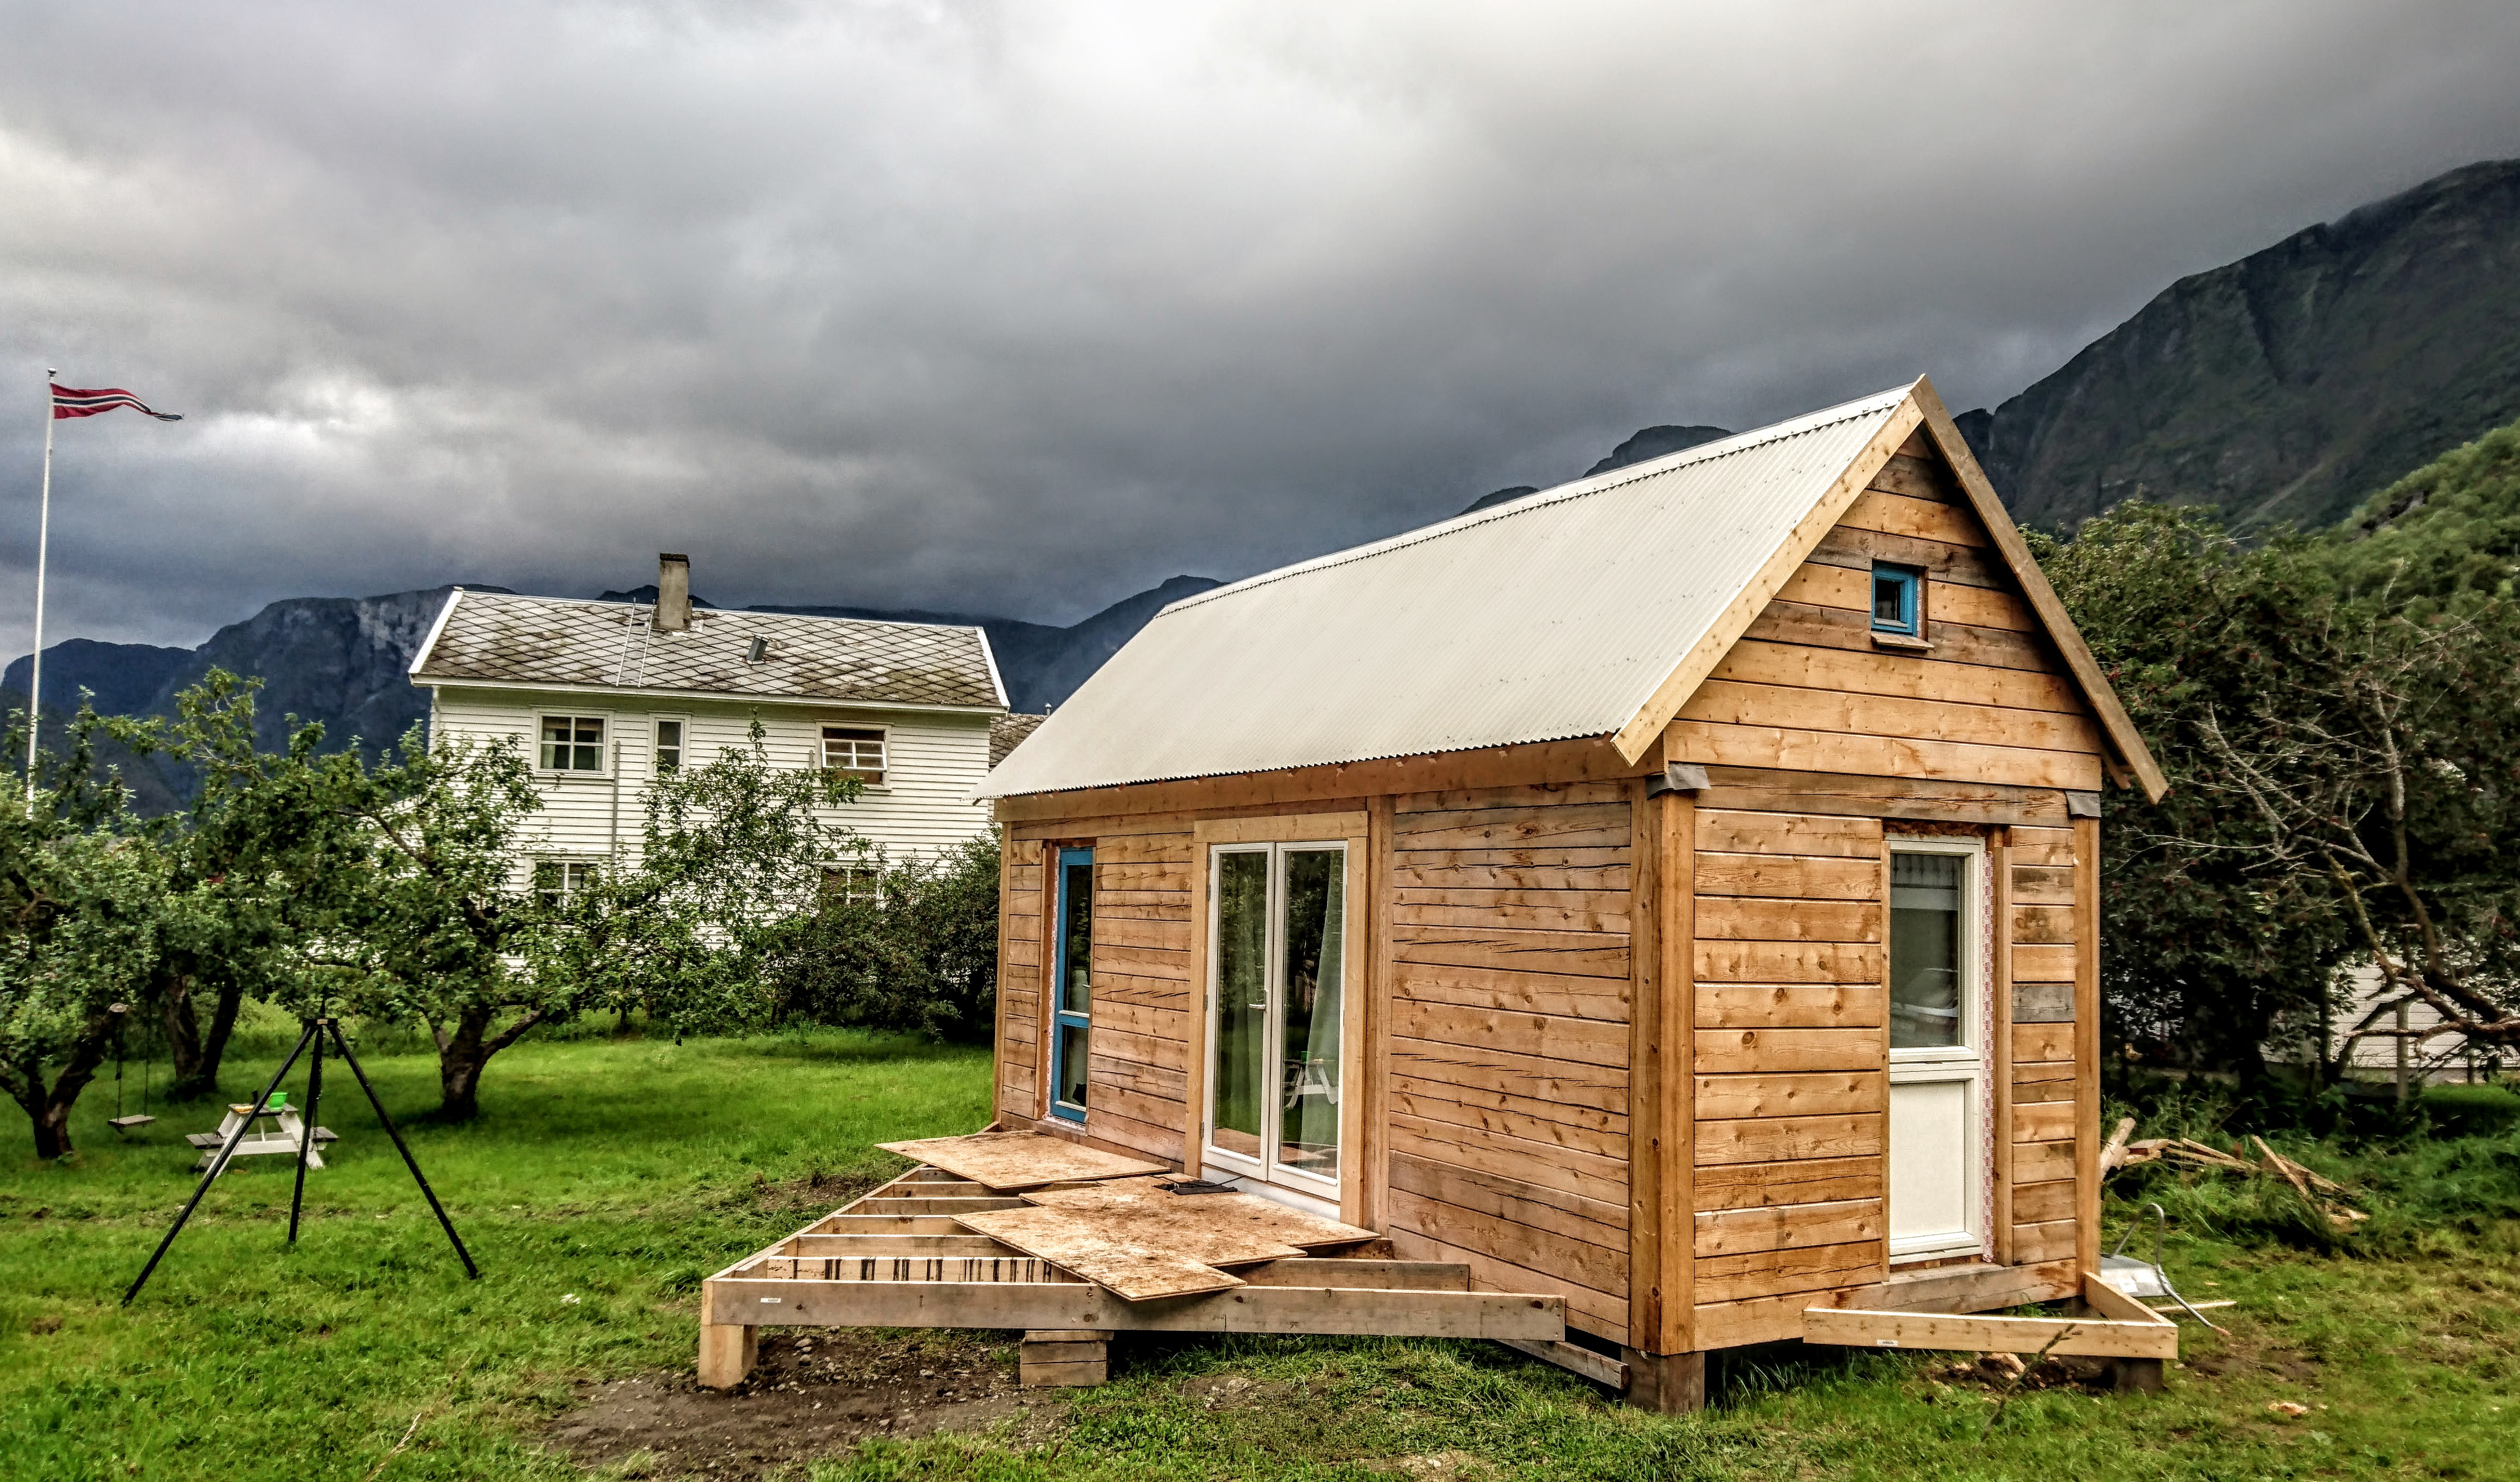 Gøran Johansen's Tiny Home In Norway (With Plans